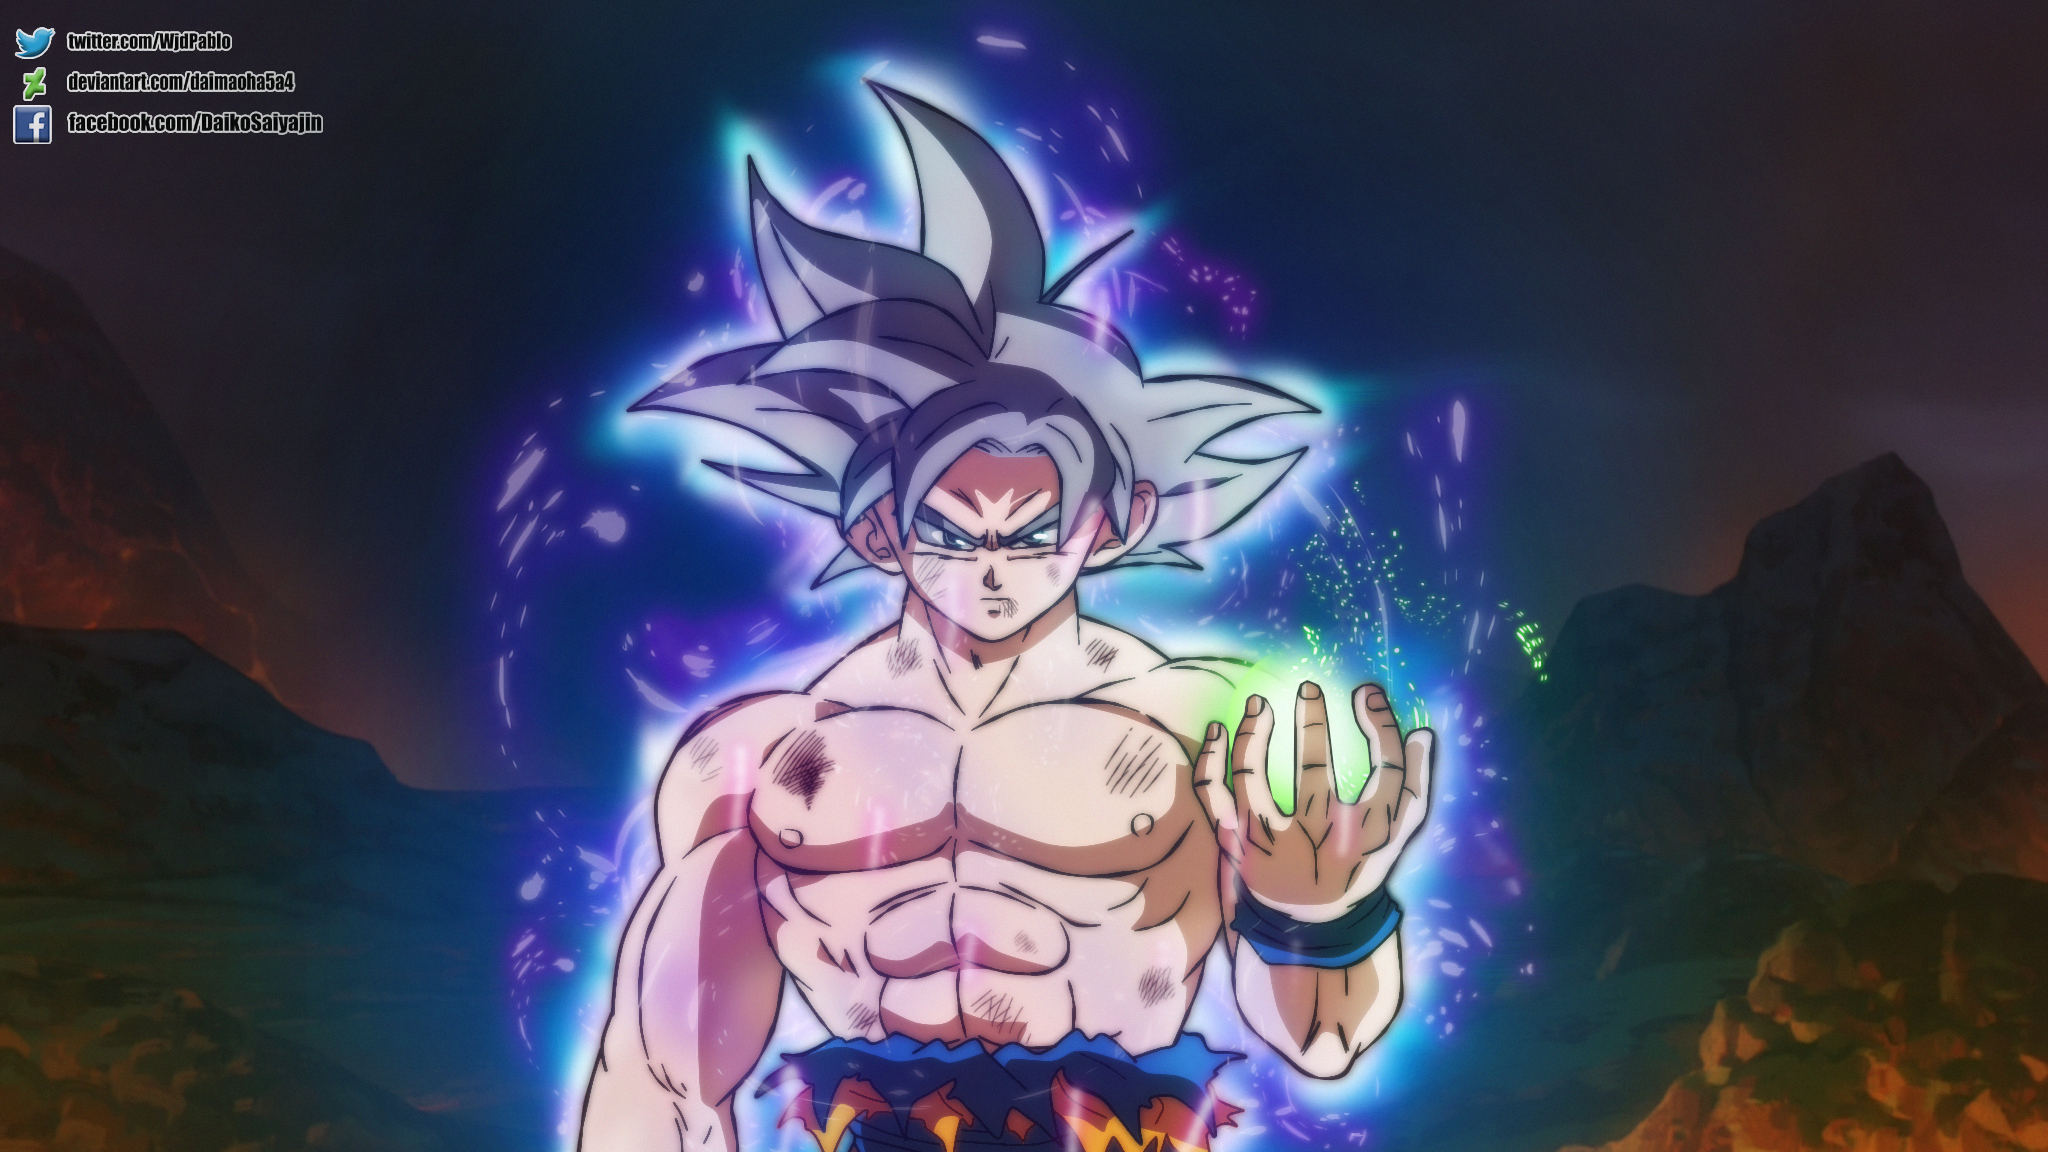 Goku Uiiiiii By Daimaoha5a4 On Deviantart